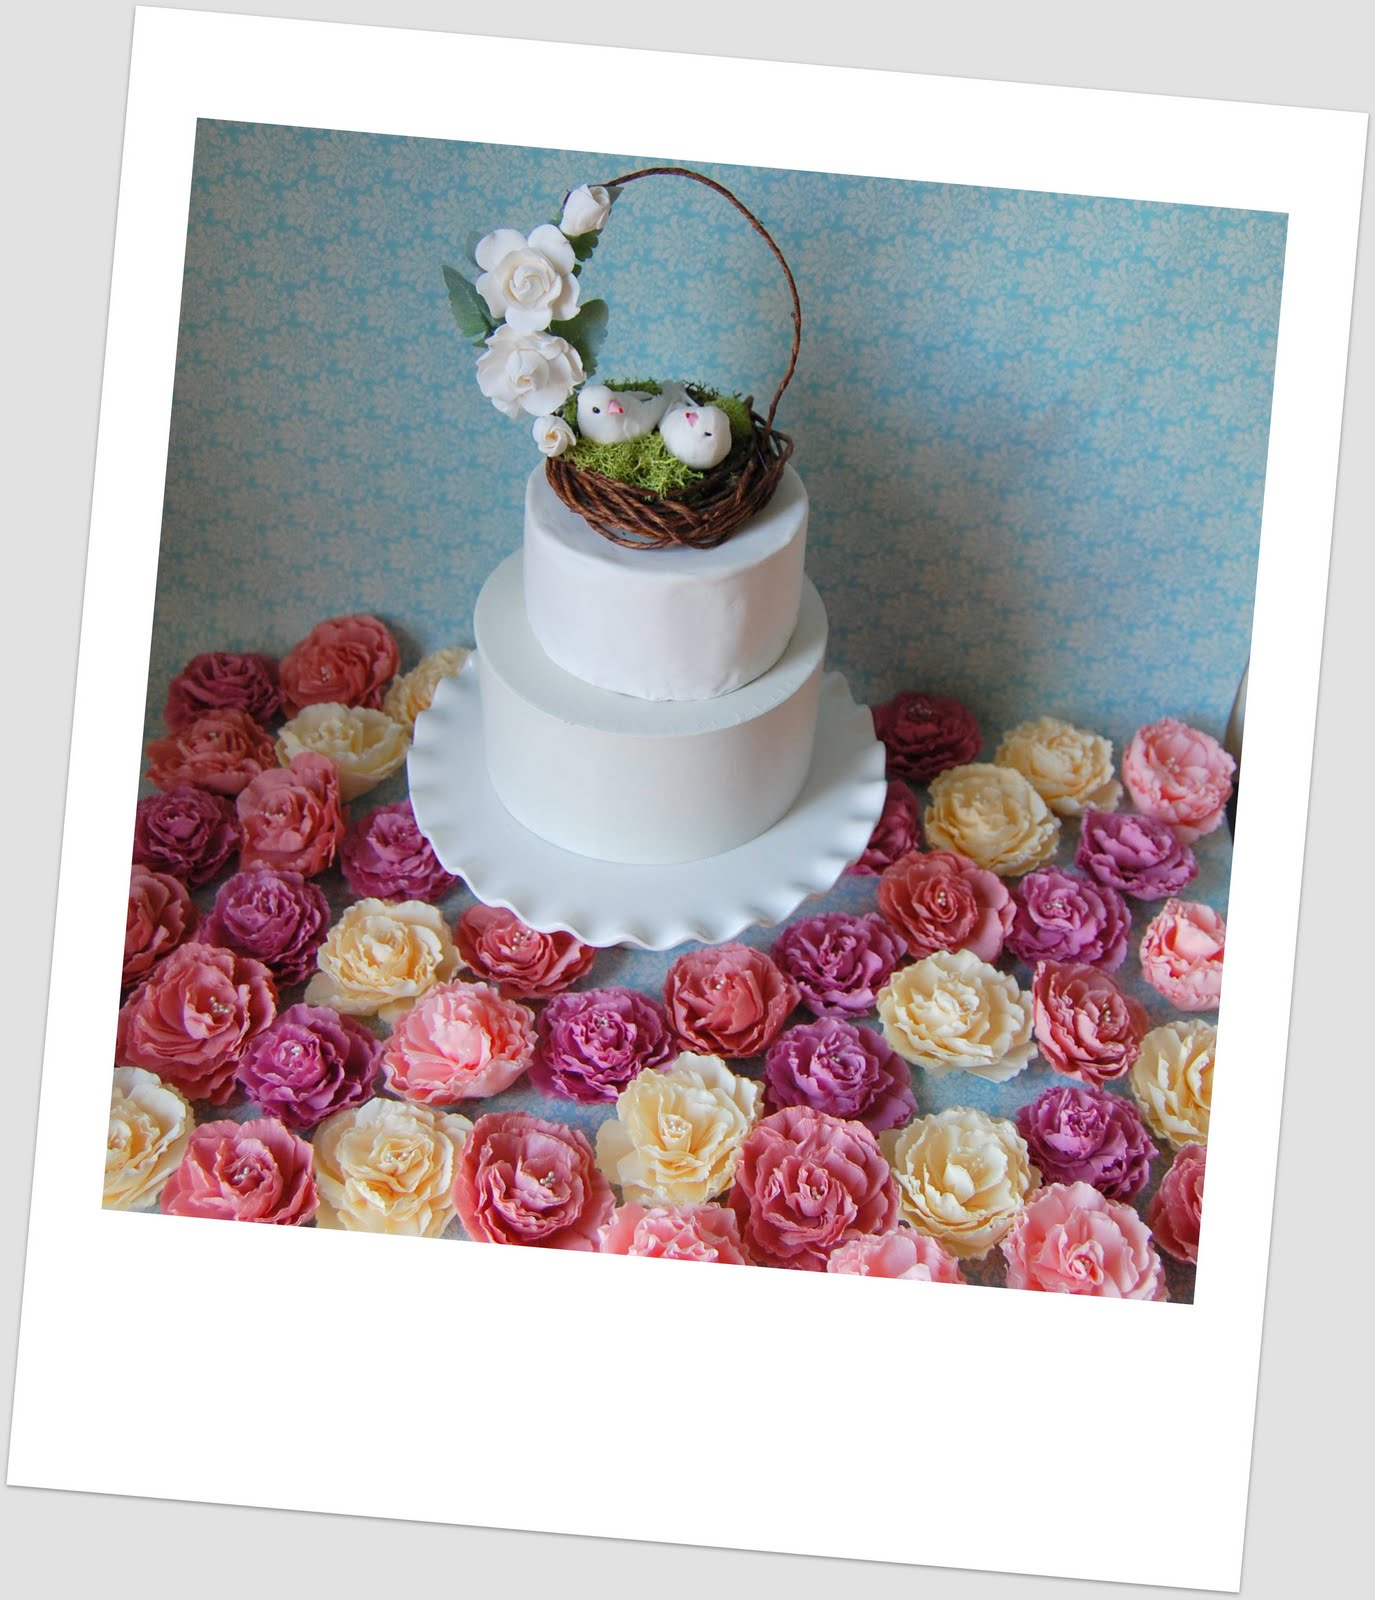 Flower Cake Toppers For Weddings: Wedding Cake Topper - Woodland